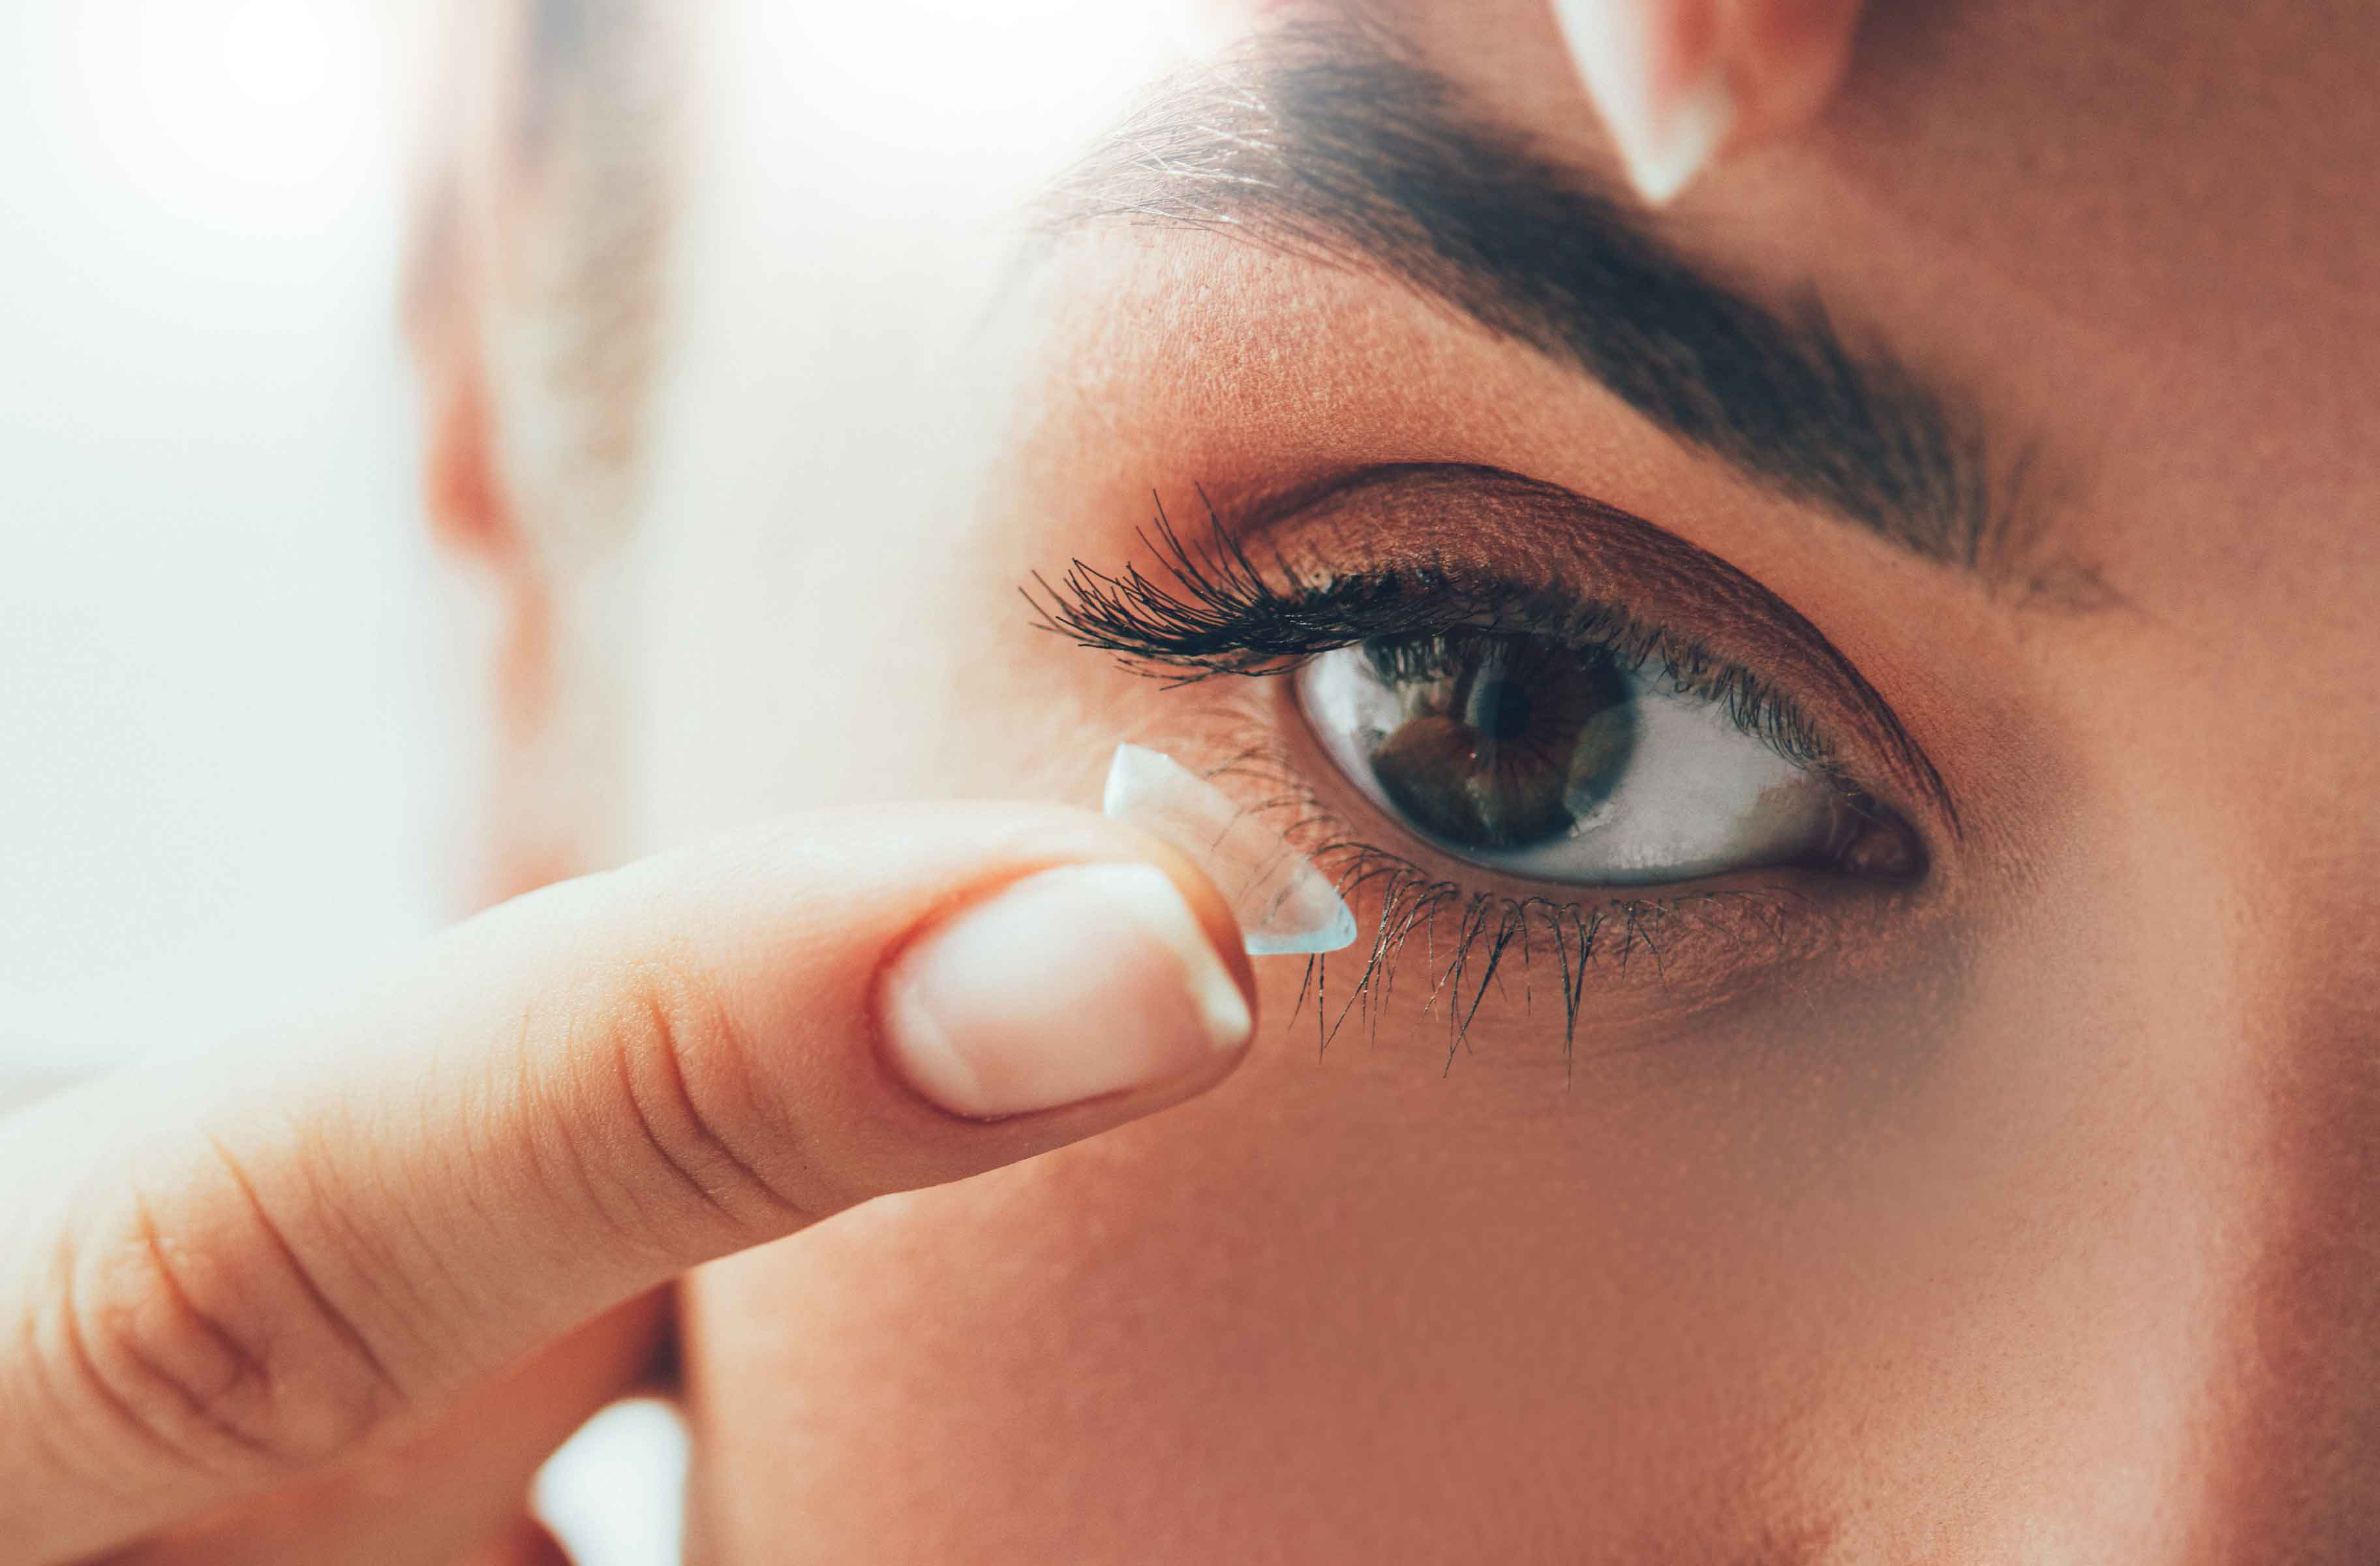 Contact Lenses: Which Type Should You Choose?